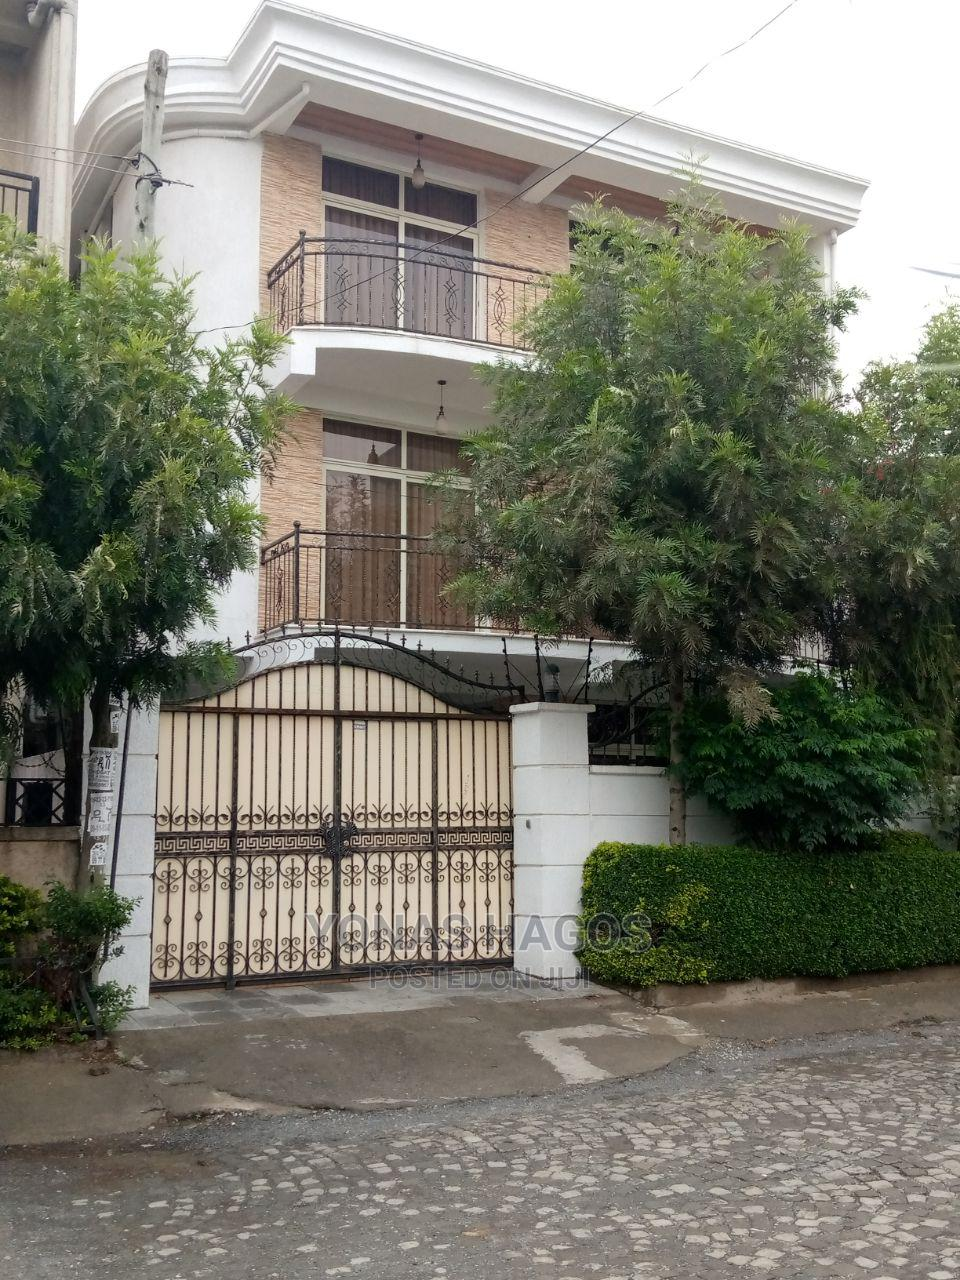 5bdrm House in ኤመራልድ, Bole for sale